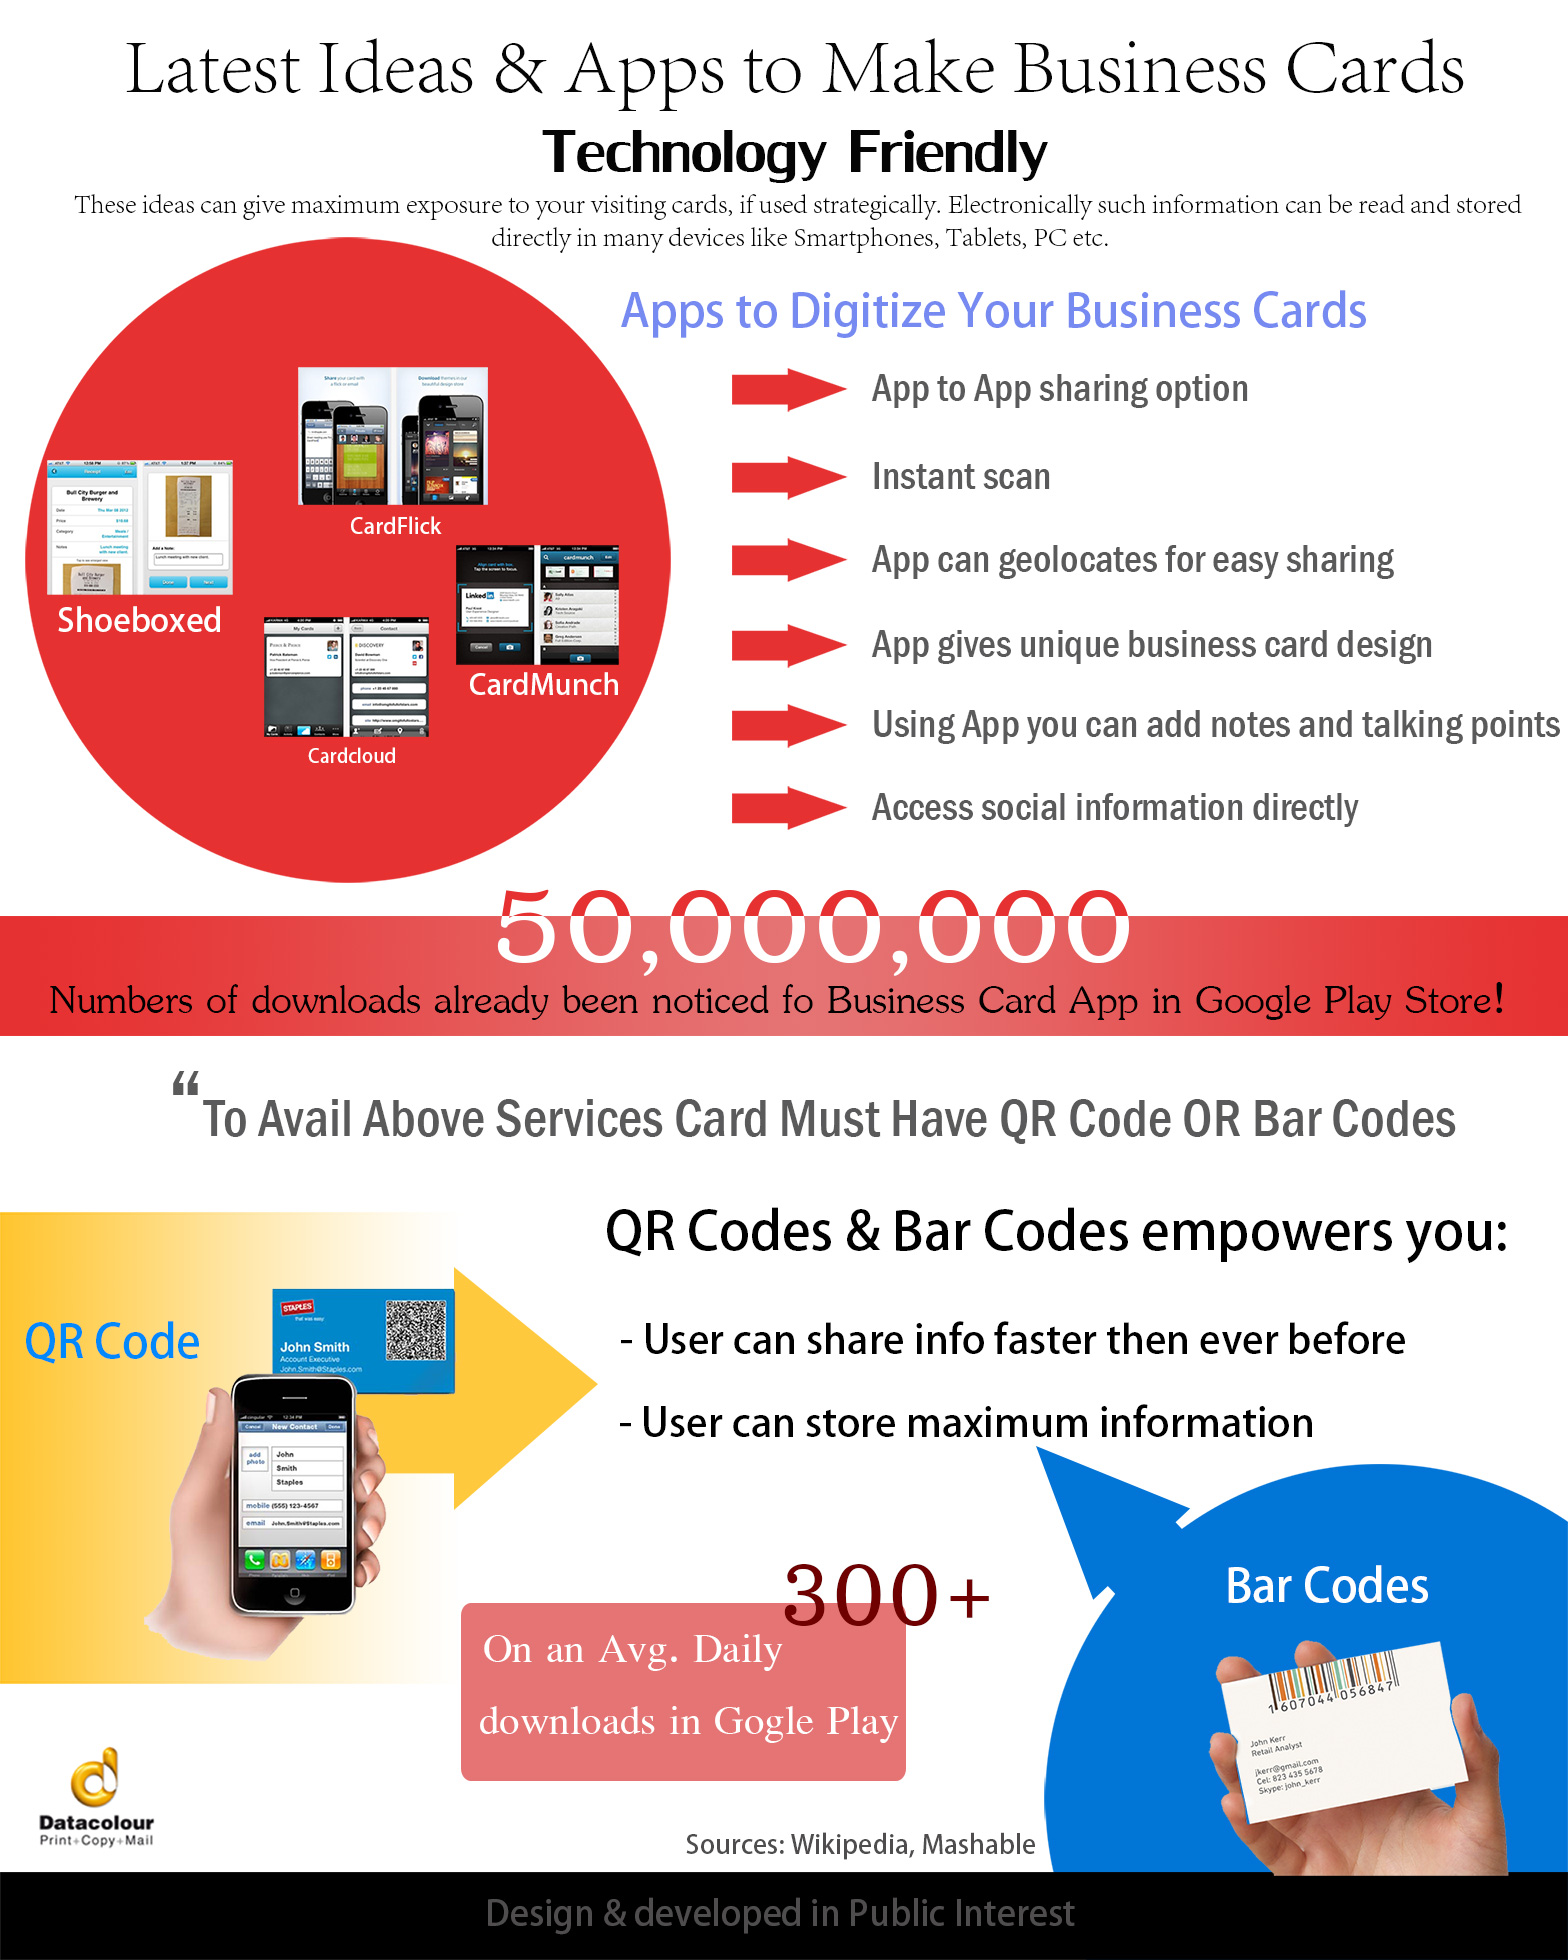 Latest Ideas and Apps to Make Business Cards Technology Friendly